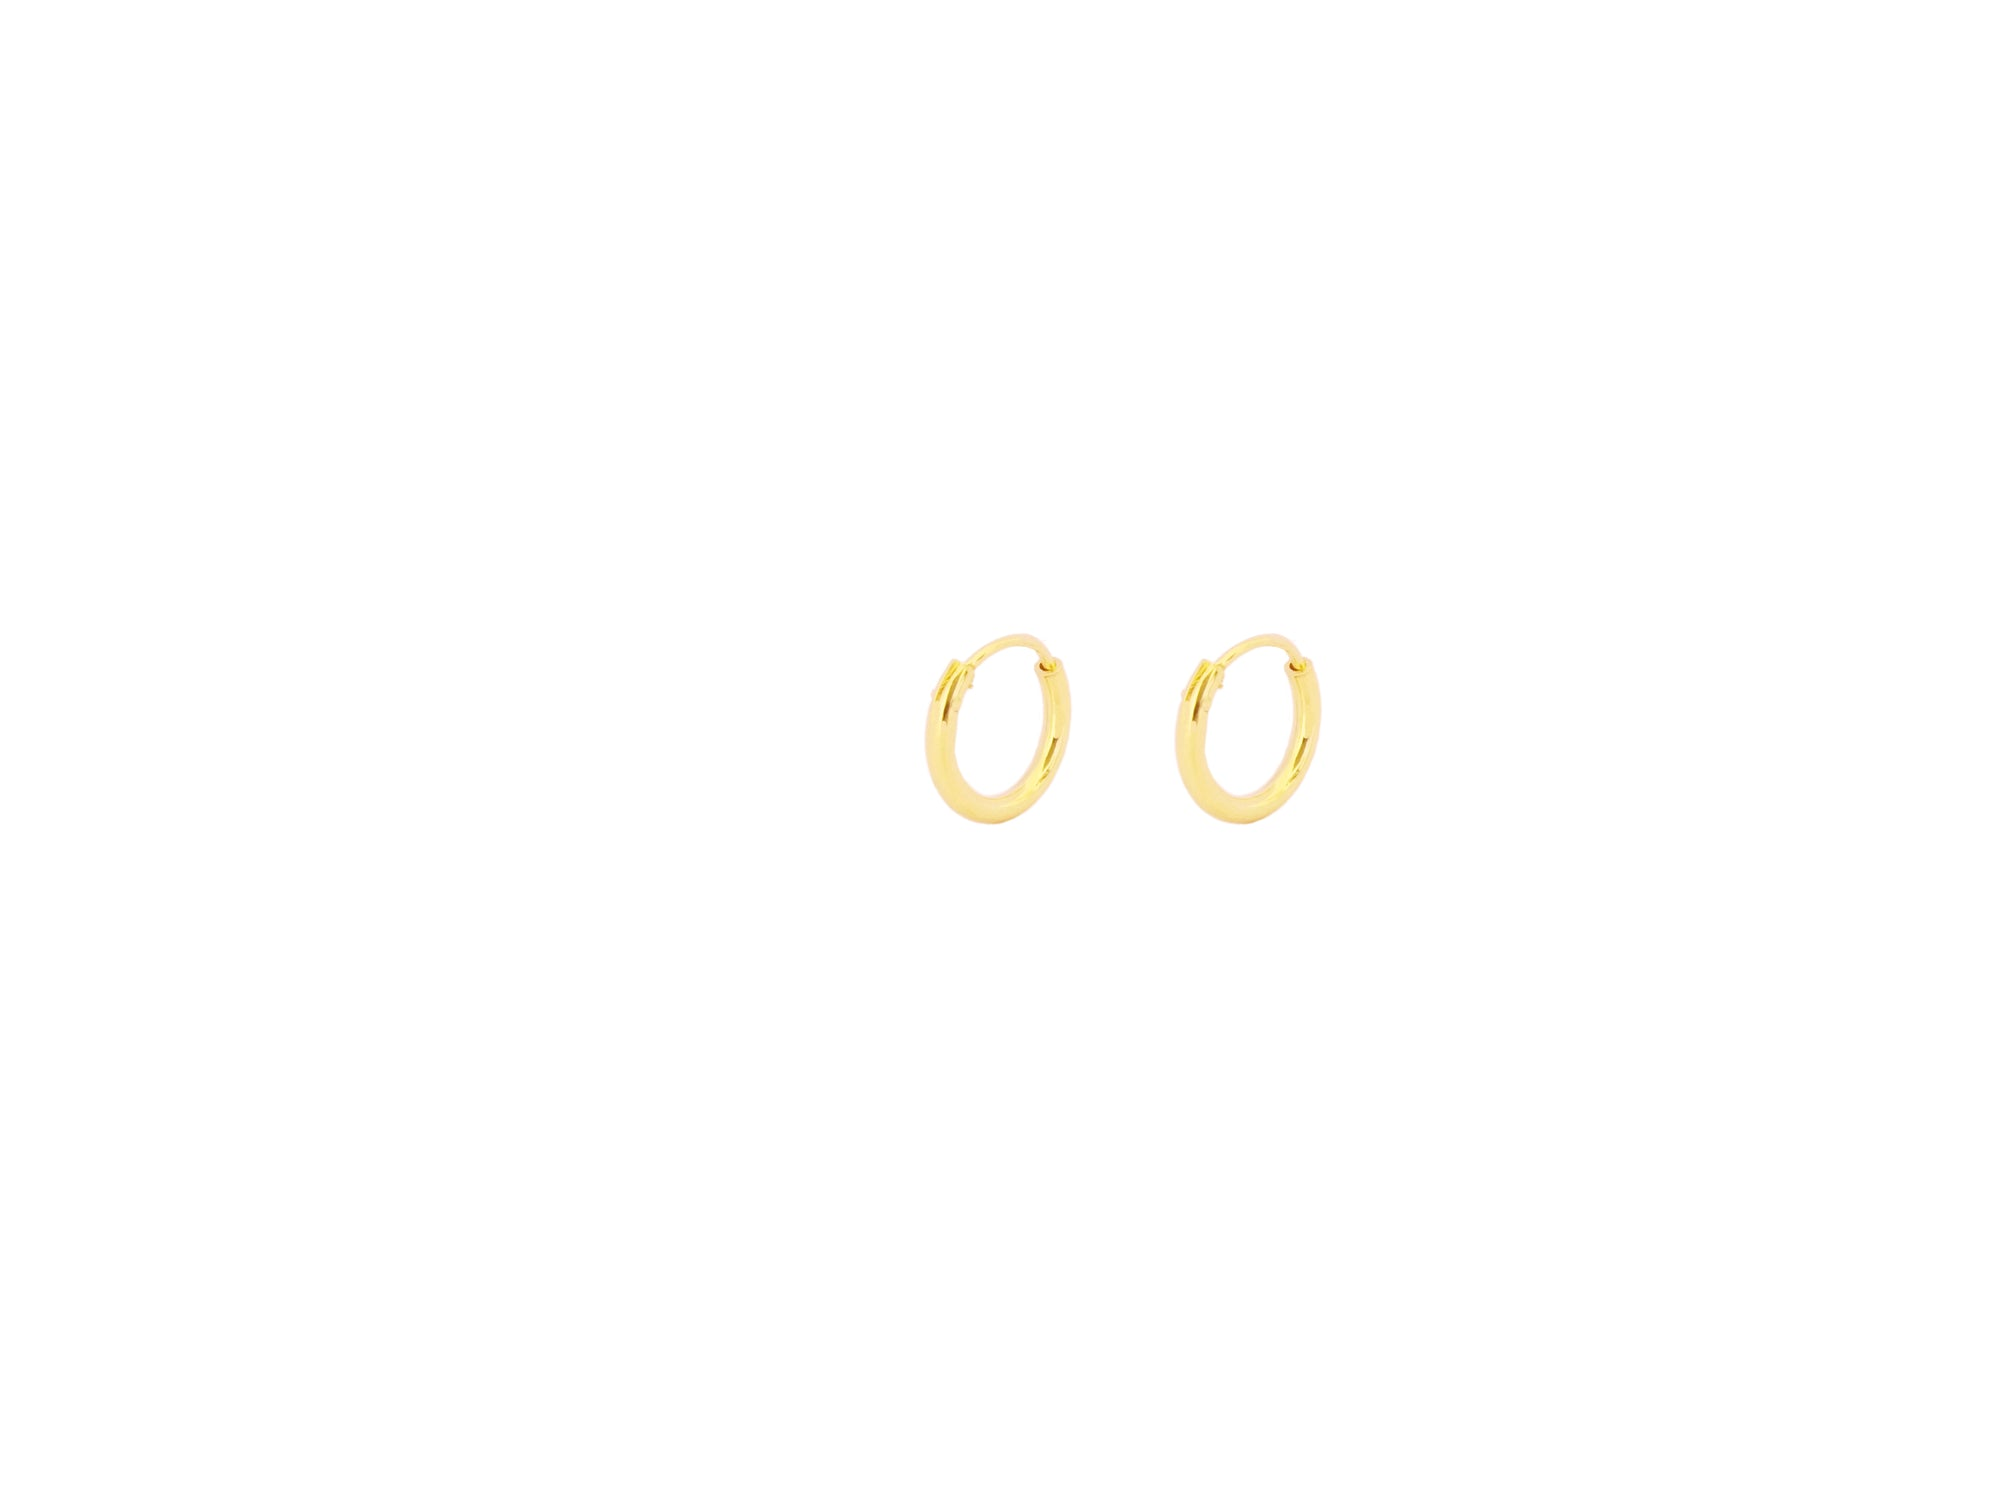 8 mm hoop gold - ByMirelae